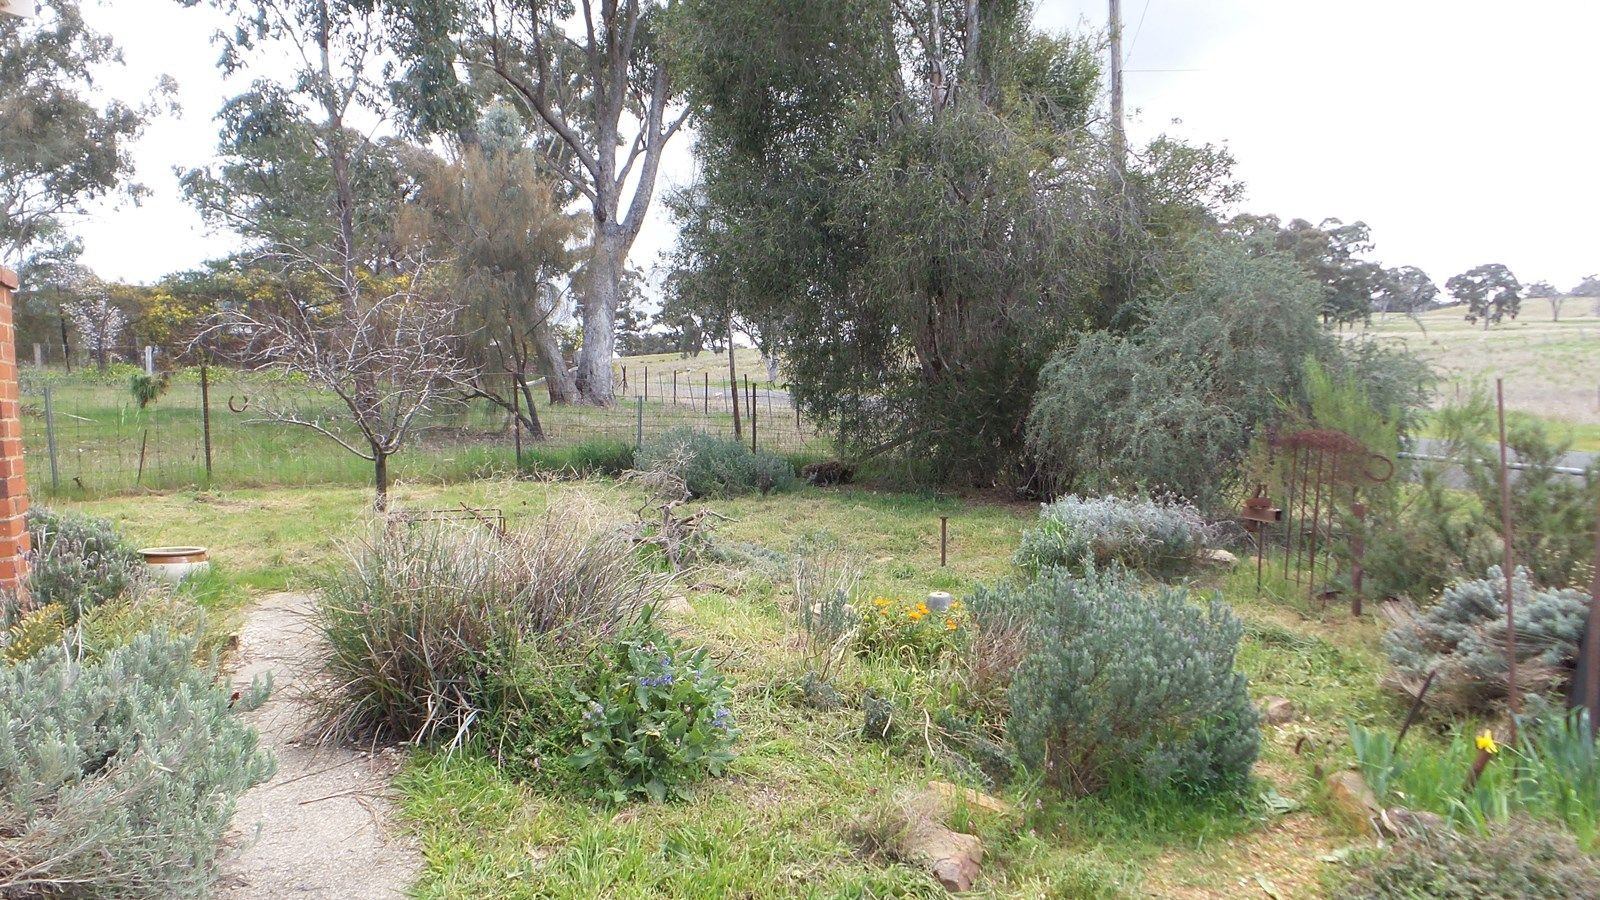 38 Tomkies Road, Castlemaine VIC 3450, Image 10